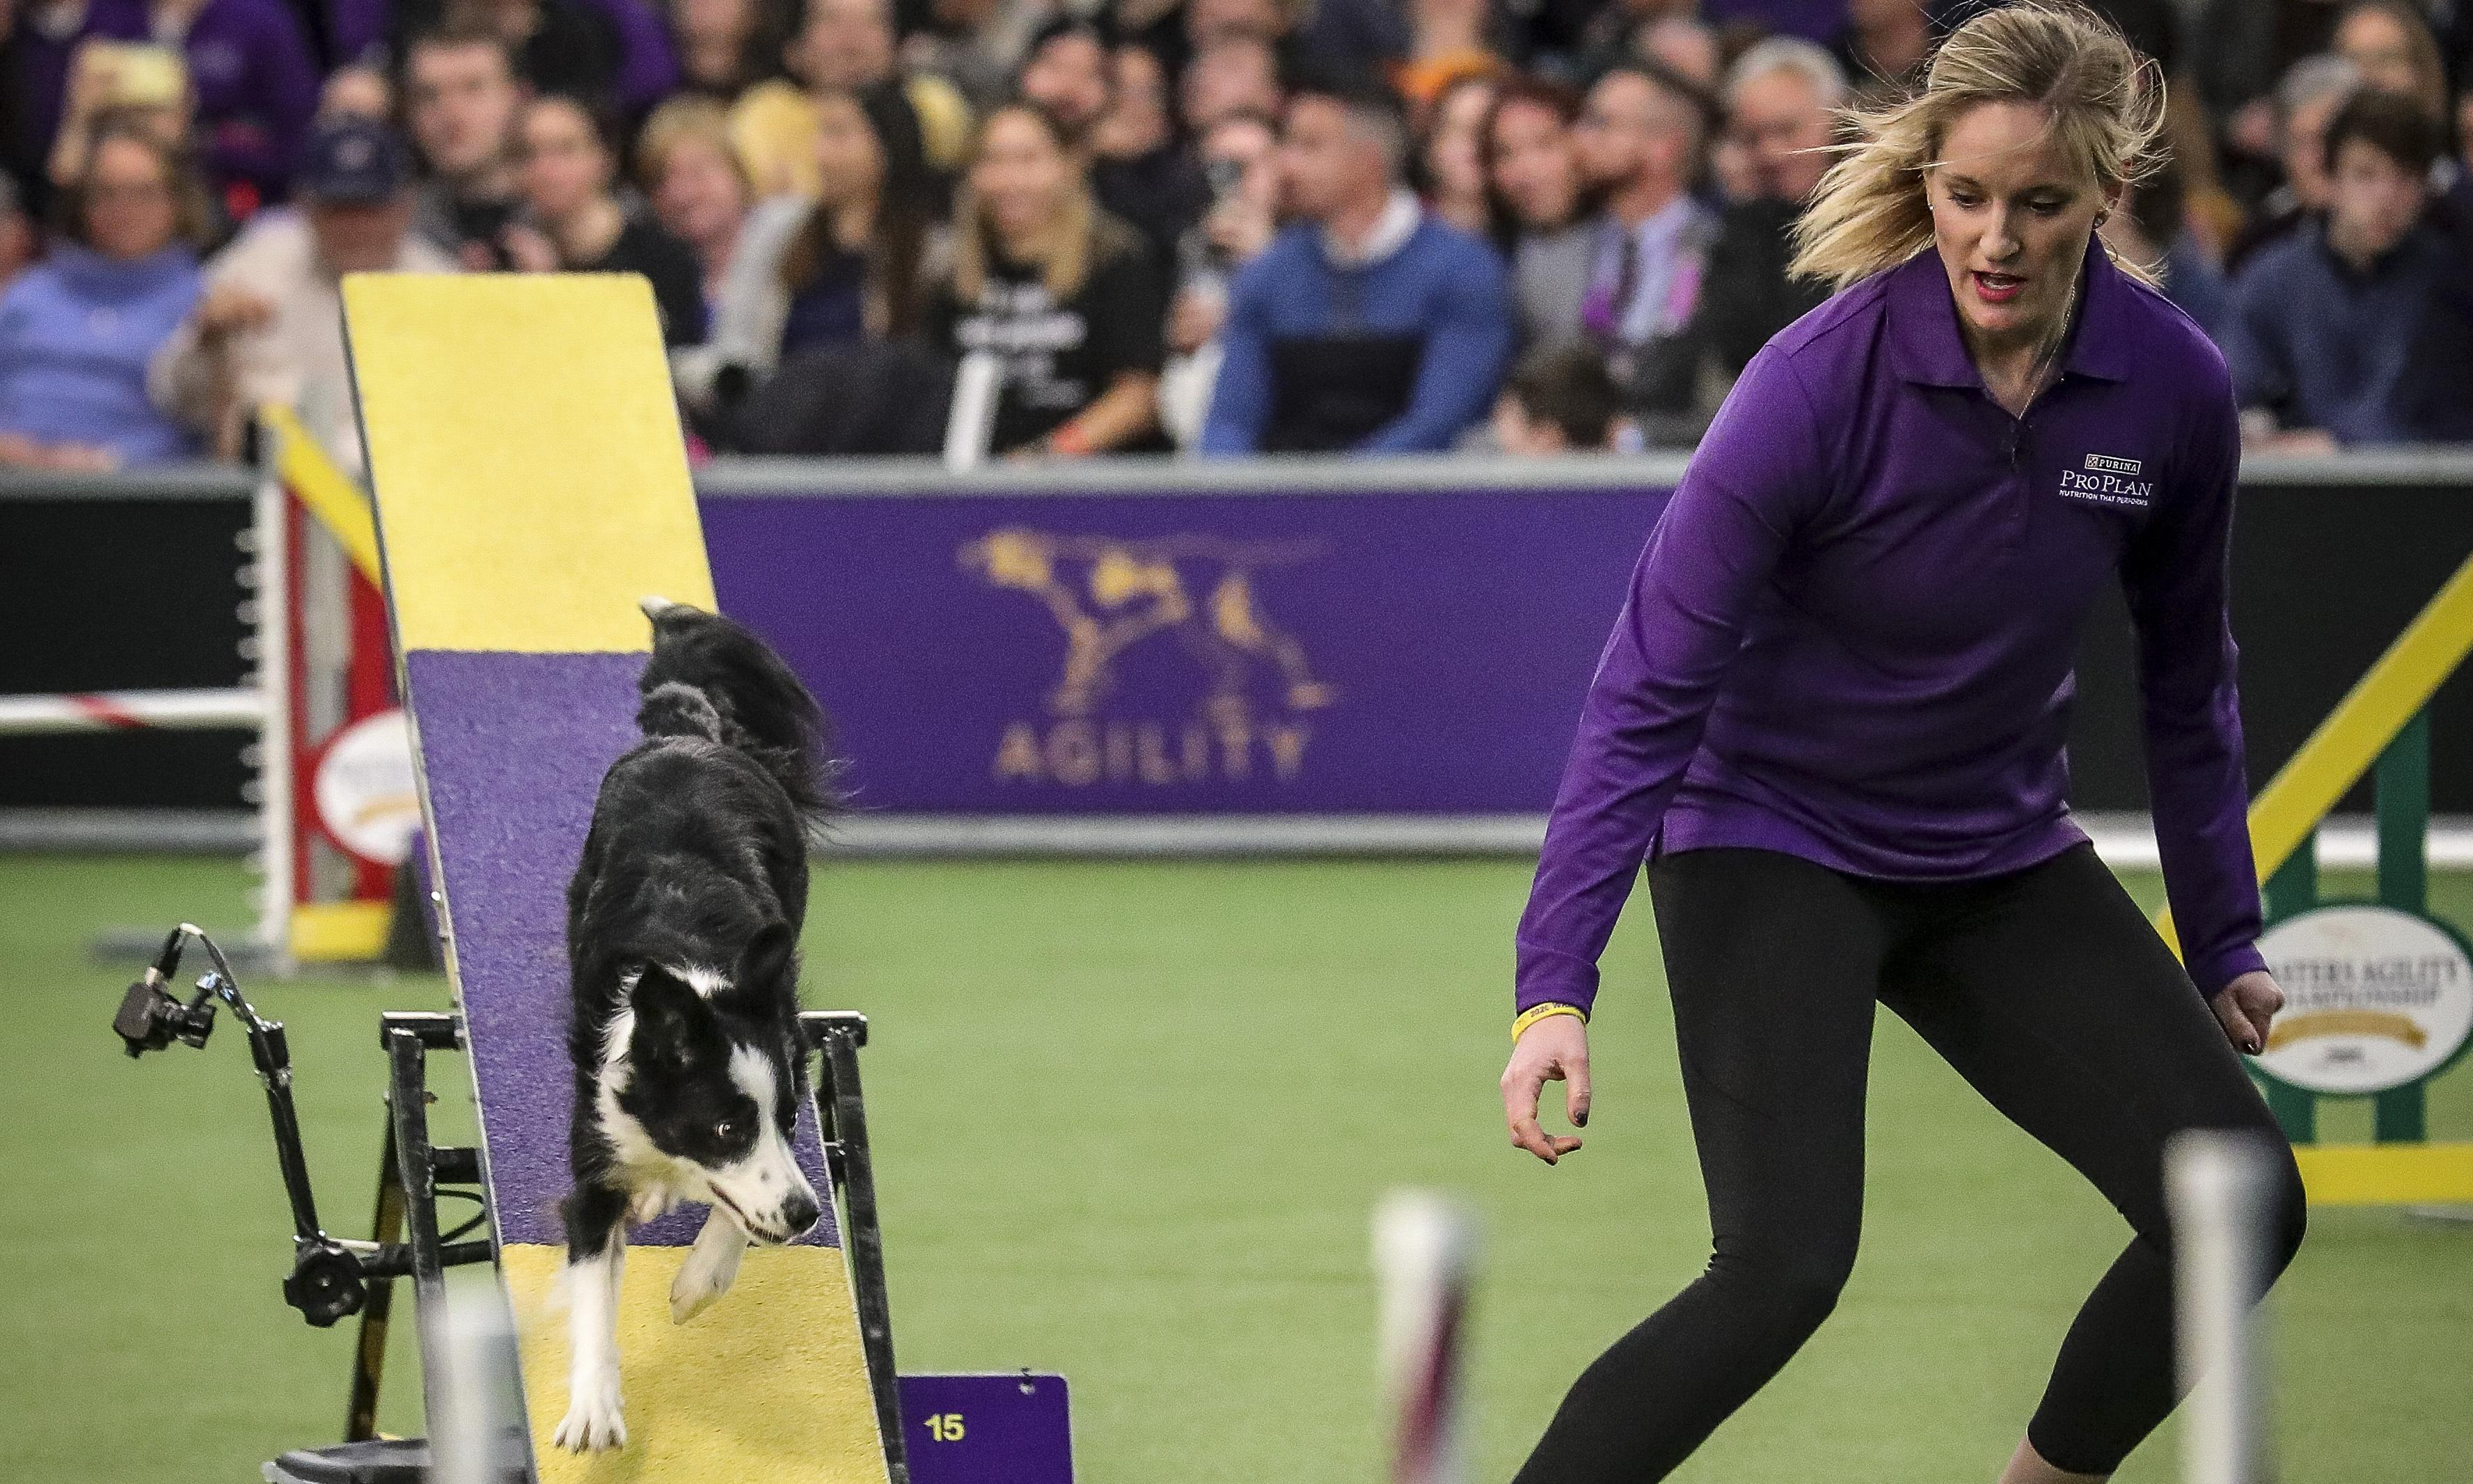 The queens of agility: America's most famous canine athletes race for glory